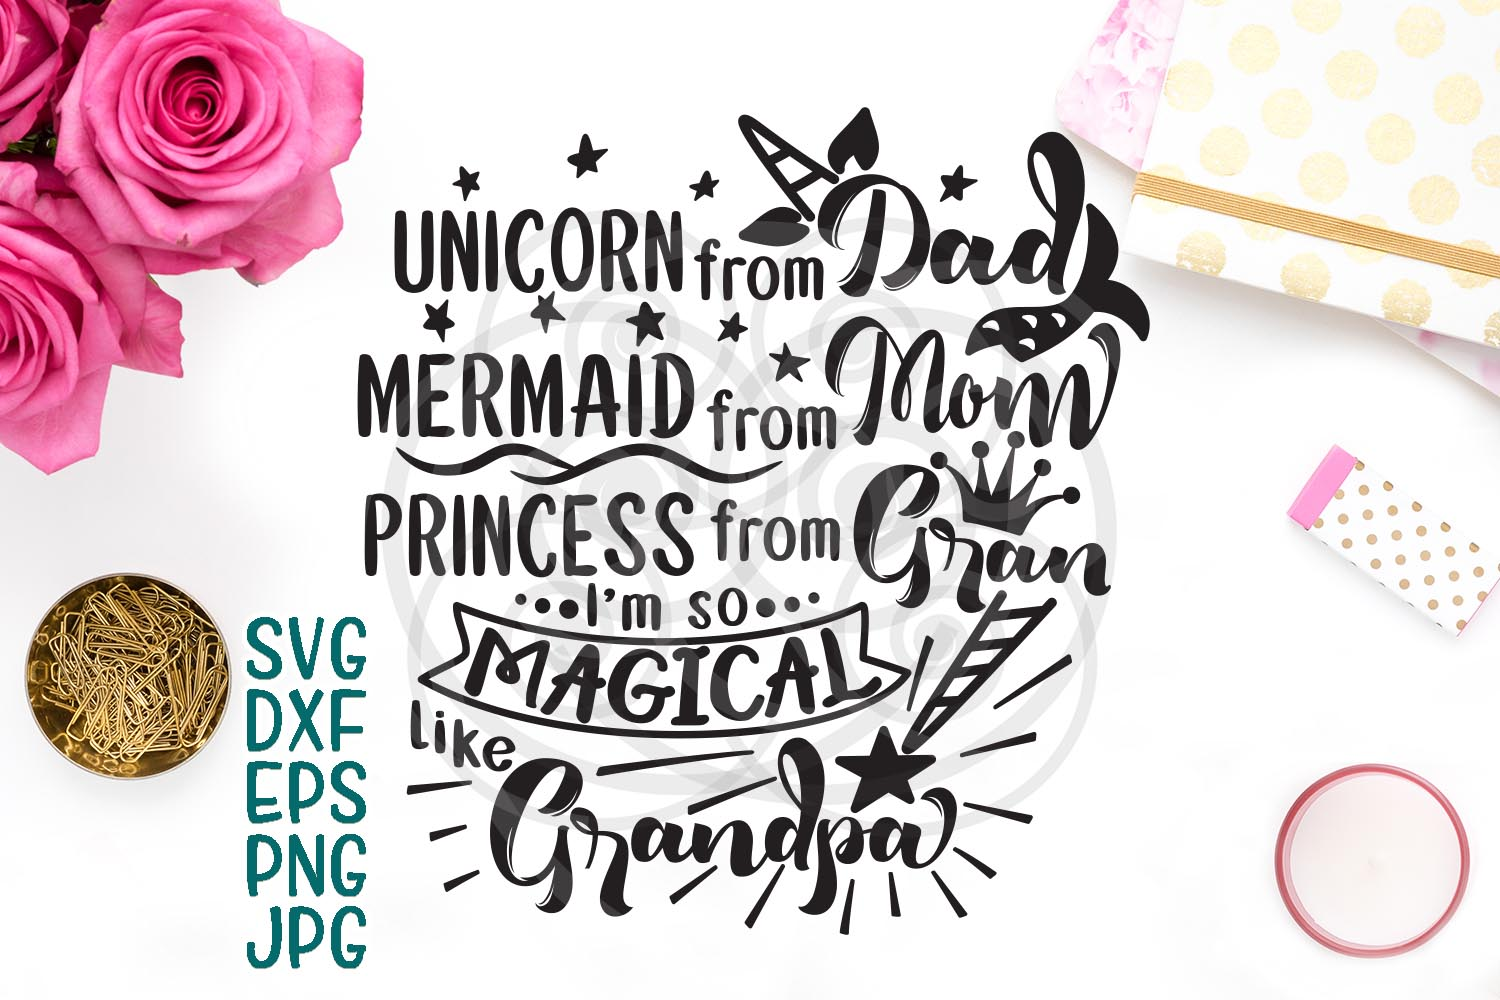 Download Free Unicorn Mermaid Princess Graphic By Cornelia Creative Fabrica for Cricut Explore, Silhouette and other cutting machines.